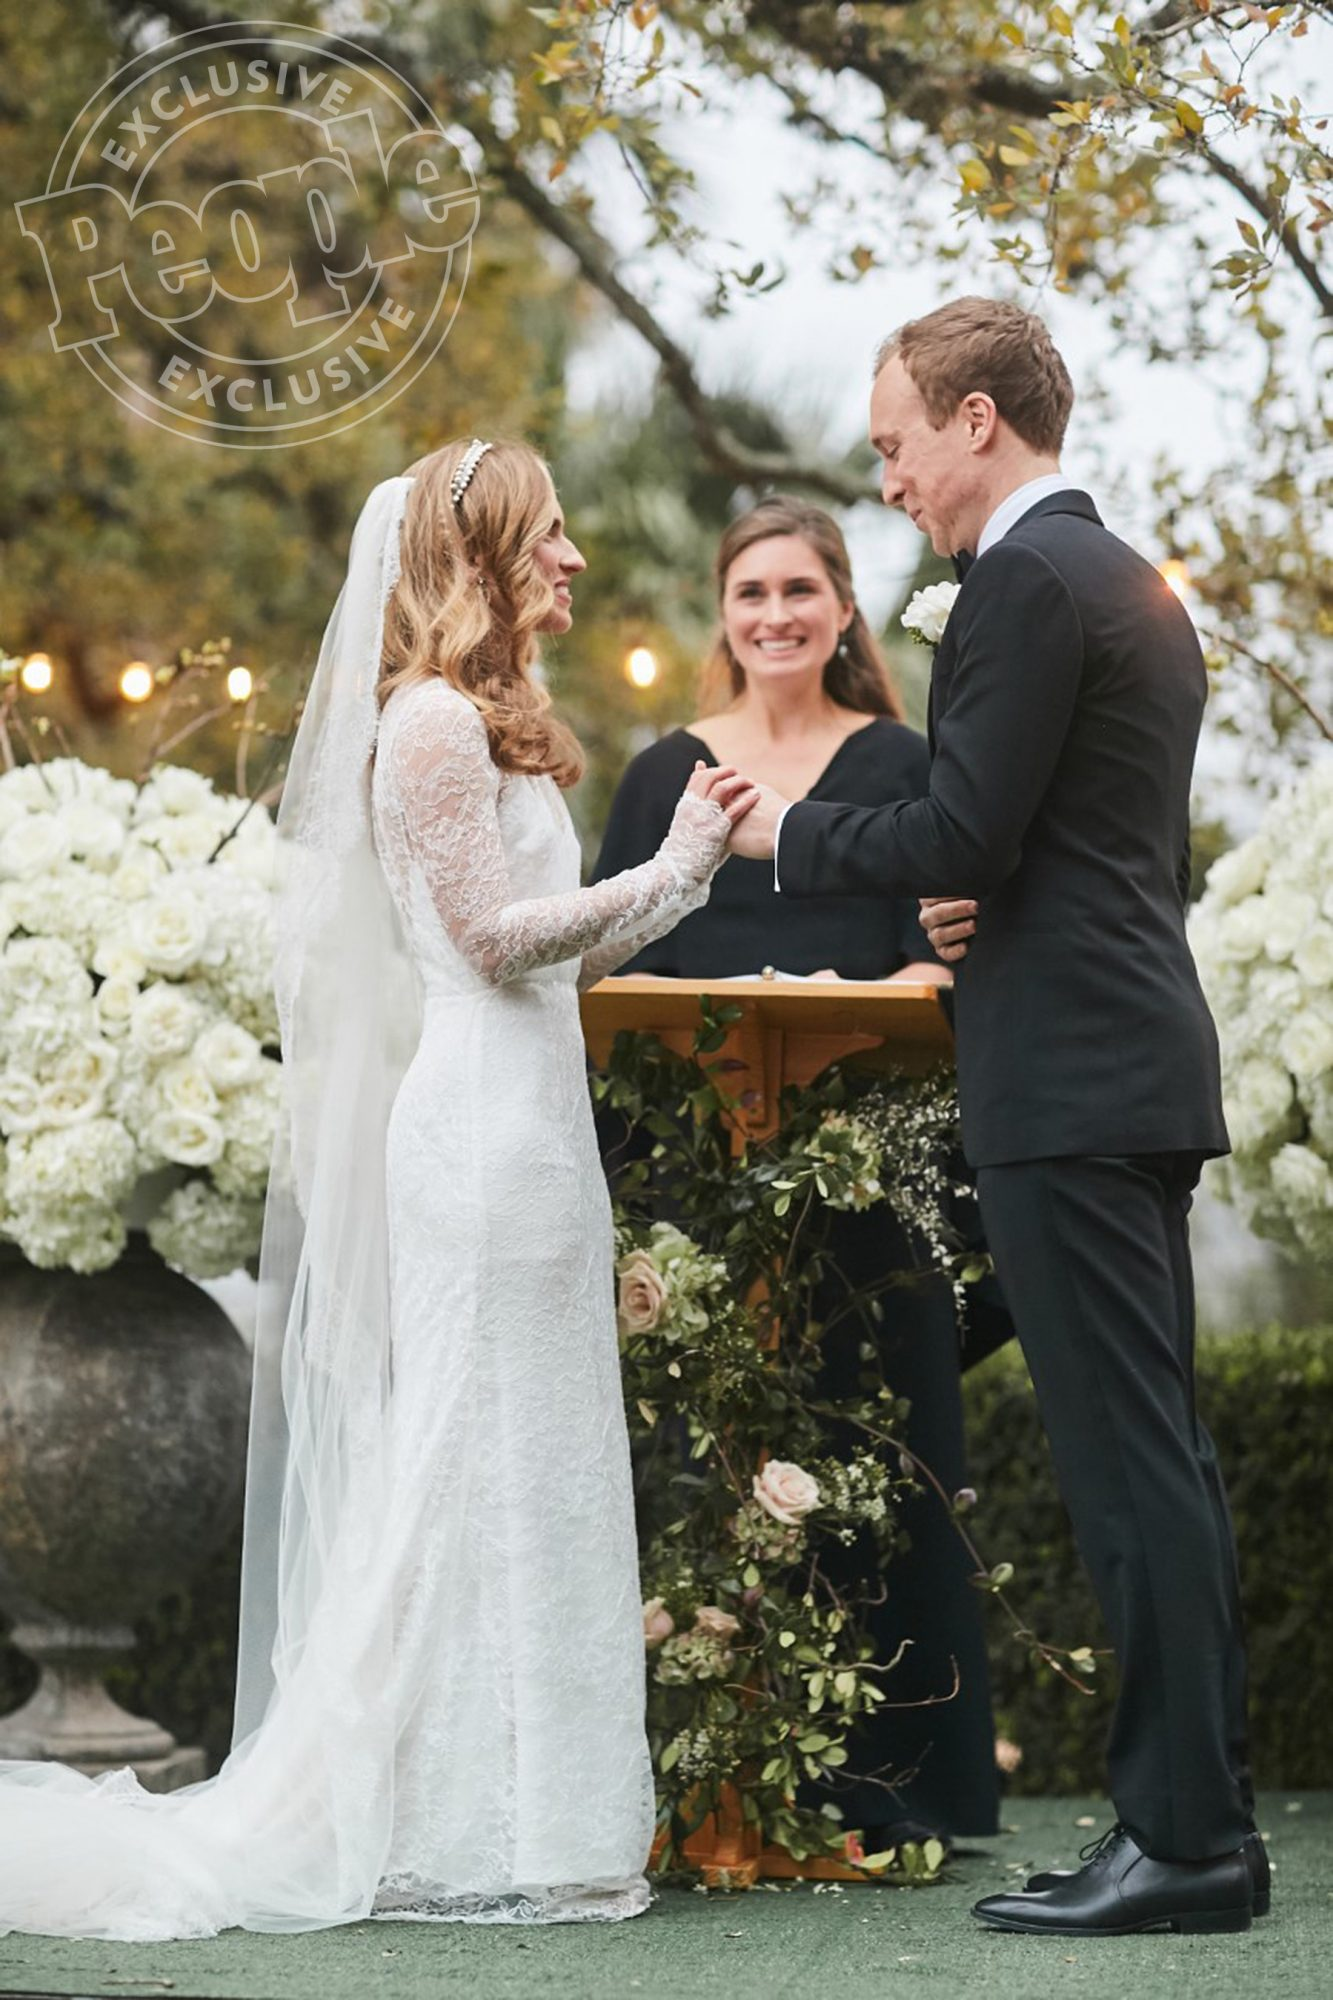 """The latest member of the family to tie the knot, Ashley - daughter of Neil and Sharon Bush, granddaughter of George H.W. and Barbara Bush - said """"I do"""" to LeFevre on March 2, 2019, at the iconic Laguna Gloria in Austin, Texas.                             The couple kicked off the weekend with a rehearsal dinner at Mattie's Green Pastures, followed by a game of """"bubble soccer"""" at a local park the next morning. Guests - including cousins Jenna Bush Hager and Barbara Pierce Bush, plus La La Land director Damien Chazelle and socialite Amanda Hearst - took in the nuptials, officiated by Ashley's sister Lauren Bush Lauren, then danced the night away, ending the evening with a silent disco as to obey the venue's noise curfew."""